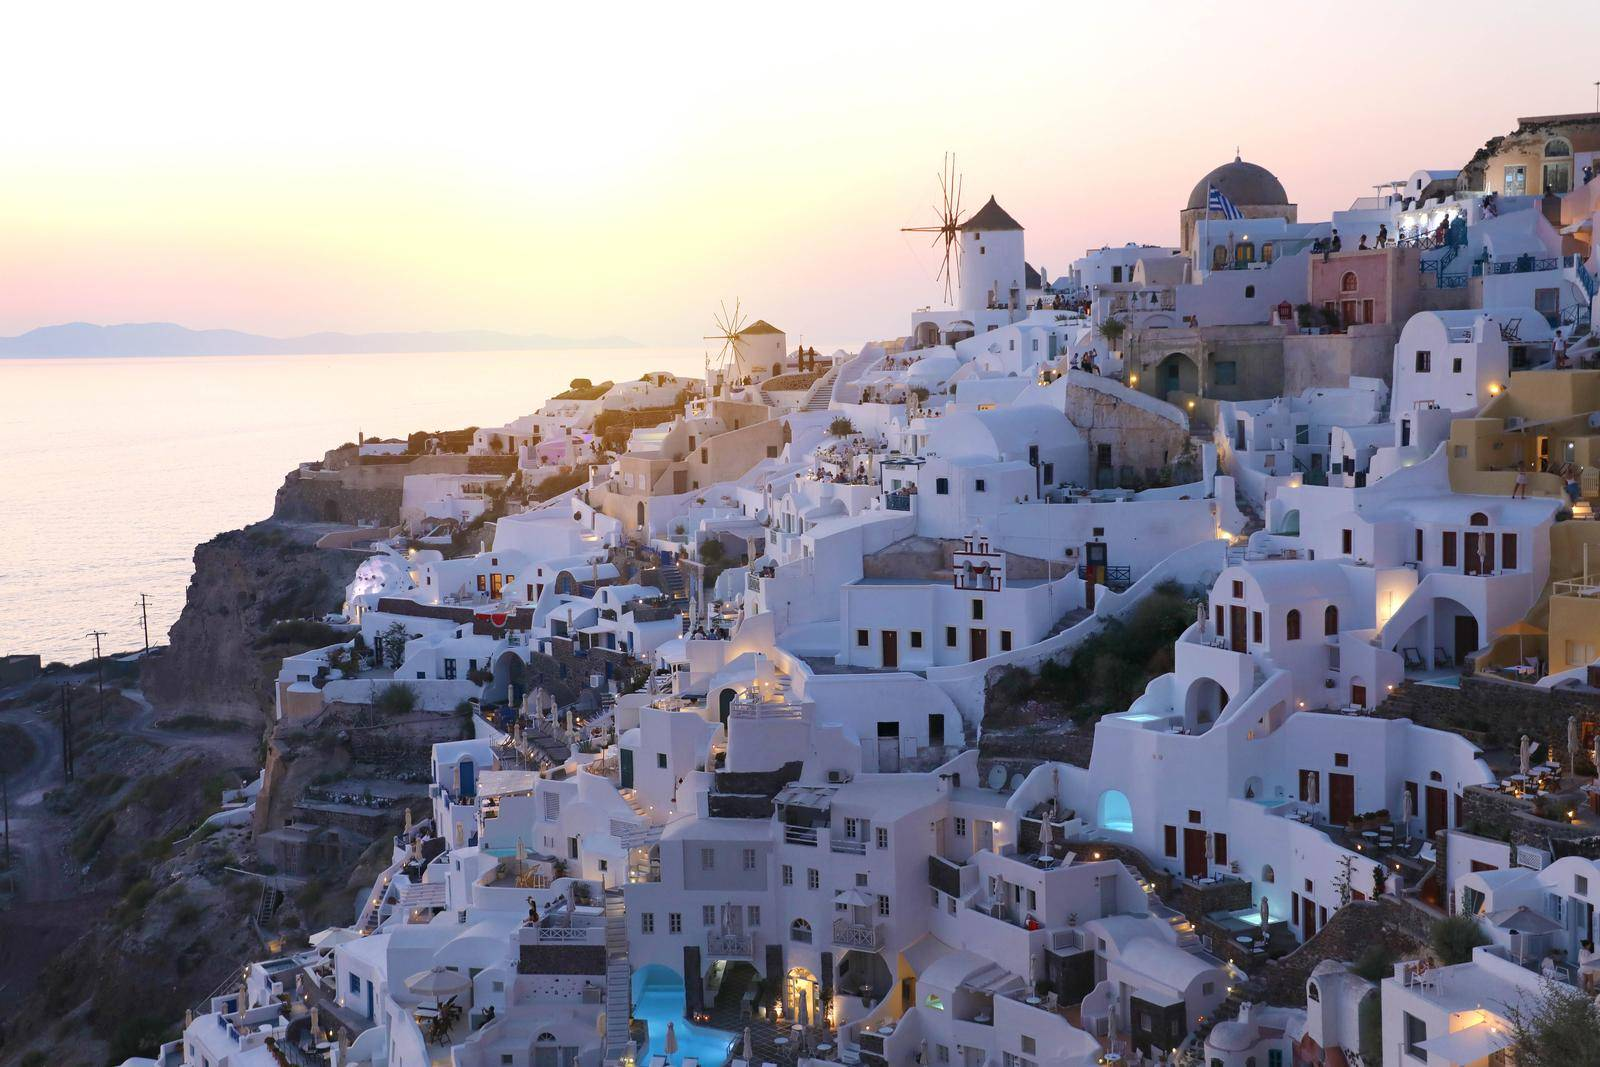 Fabulous picturesque village of Oia in Santorini island at sunset, Greece